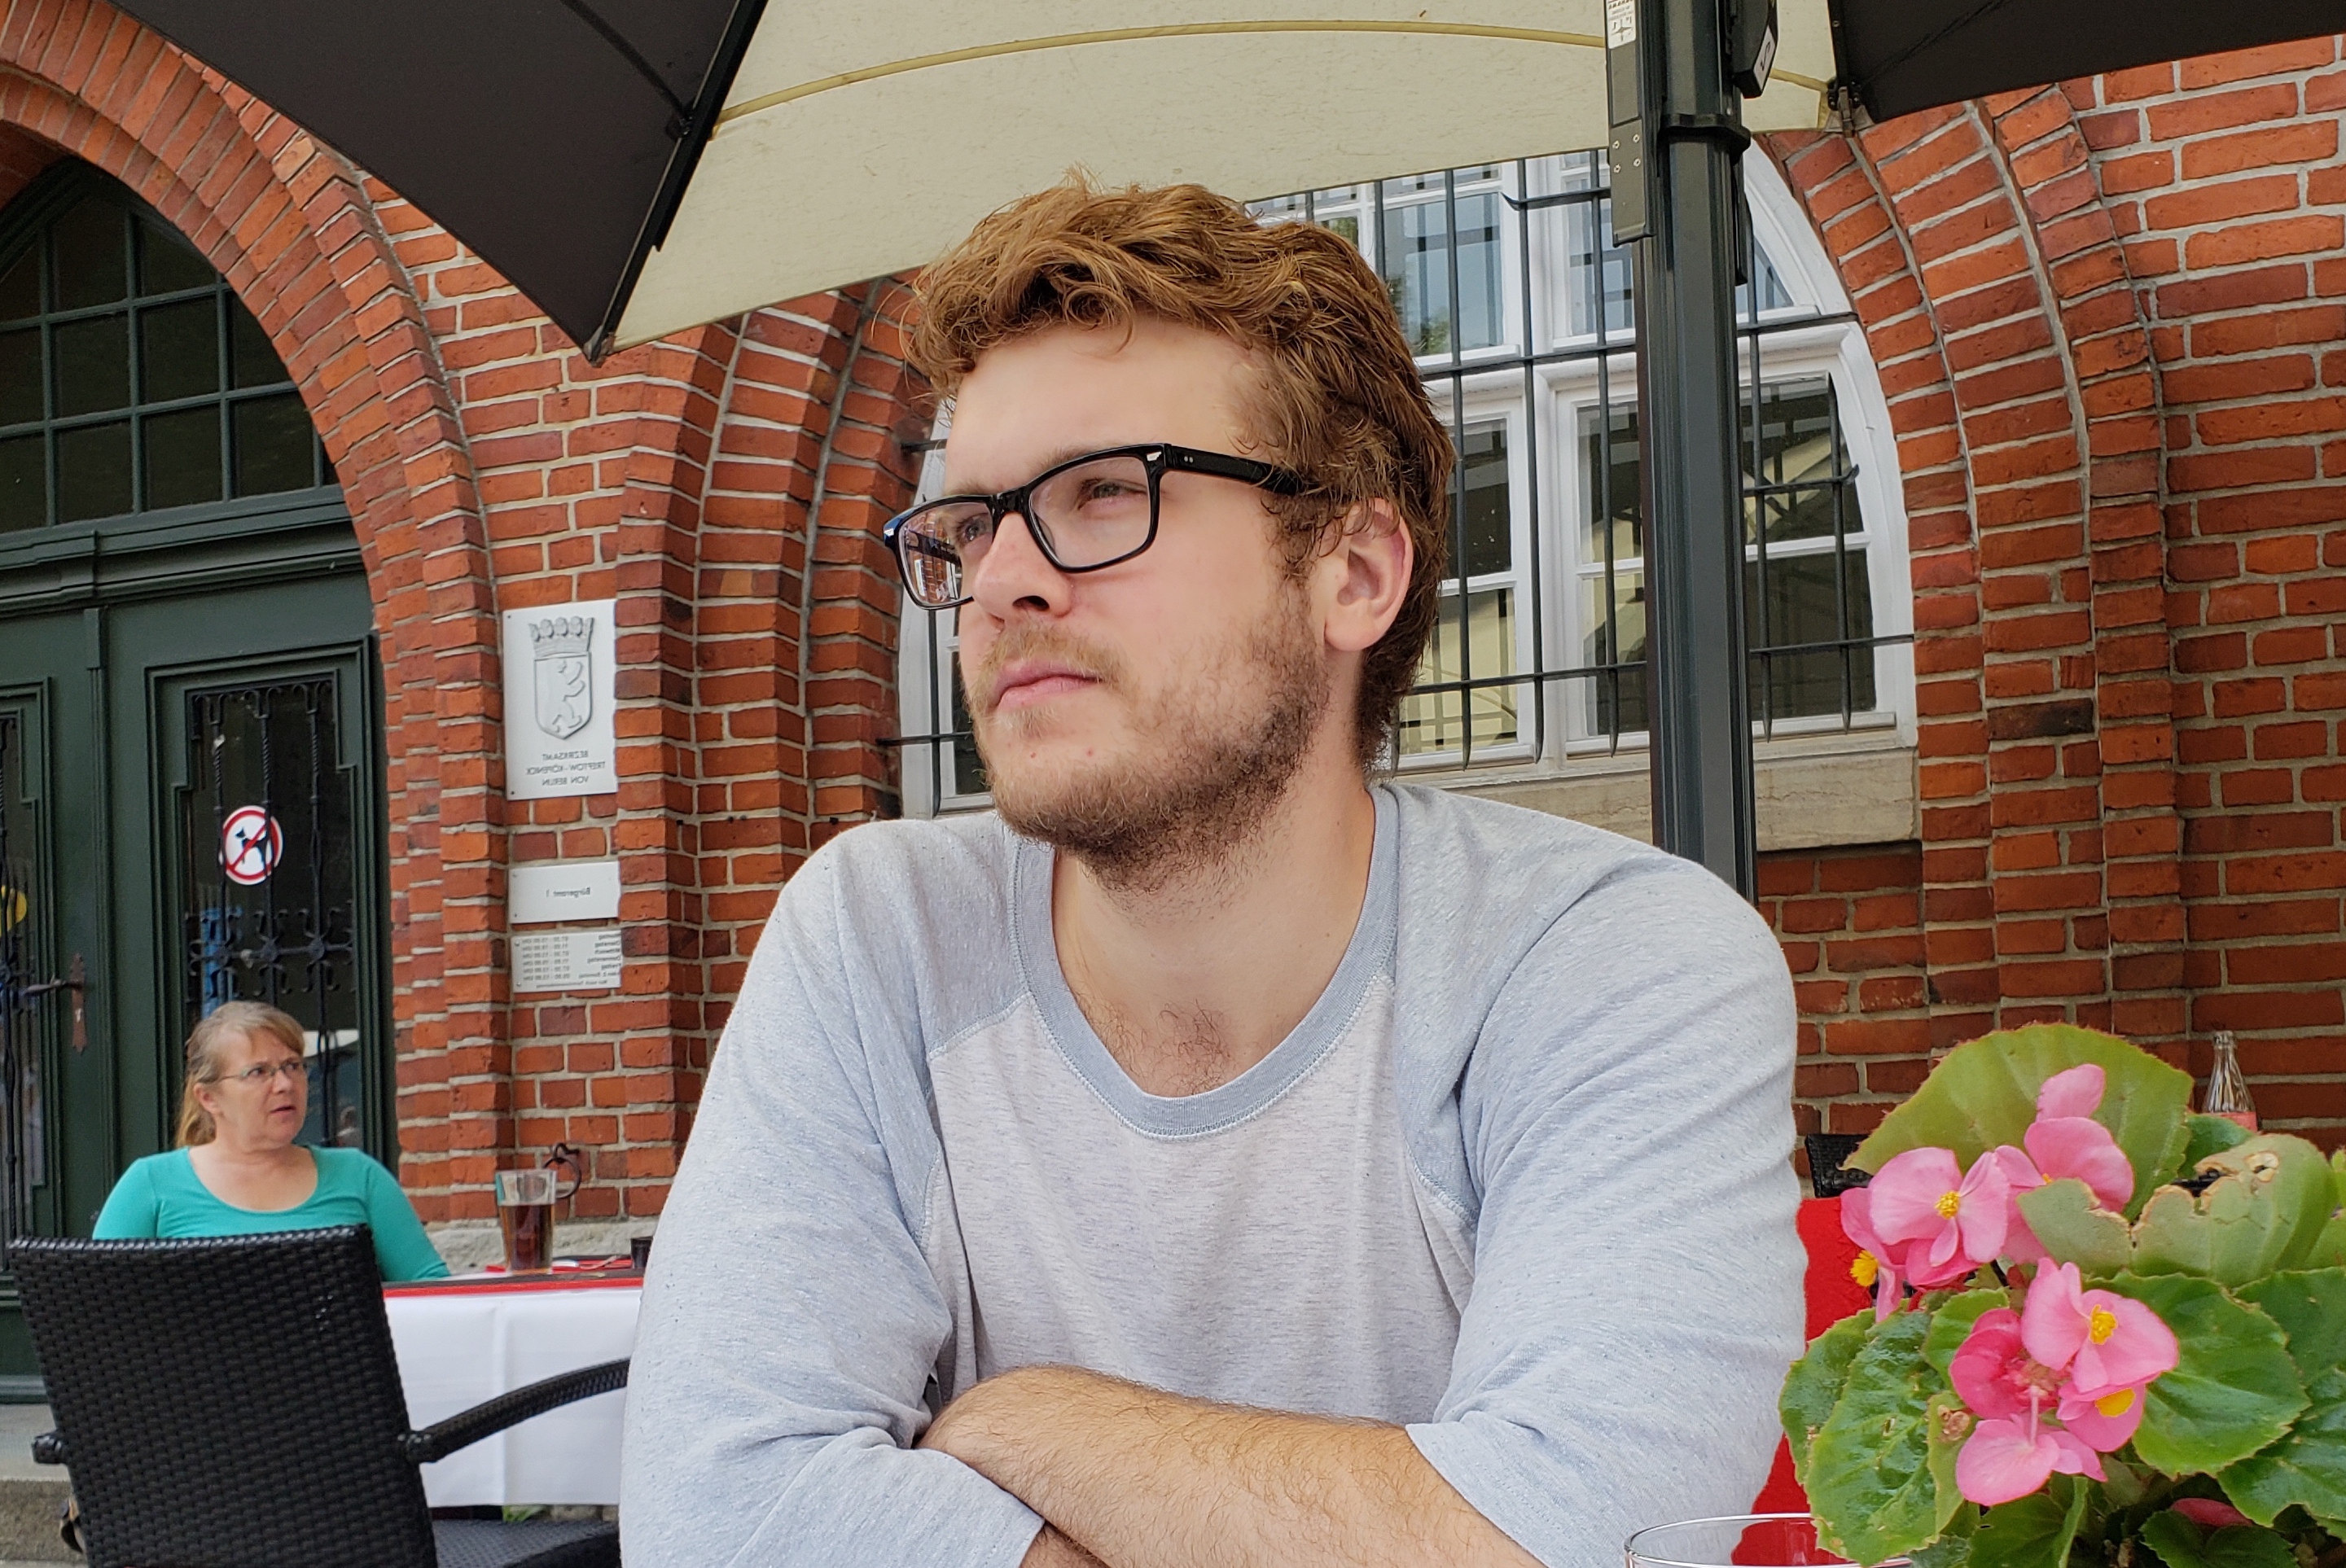 Grad student sits at an outdoor cafe